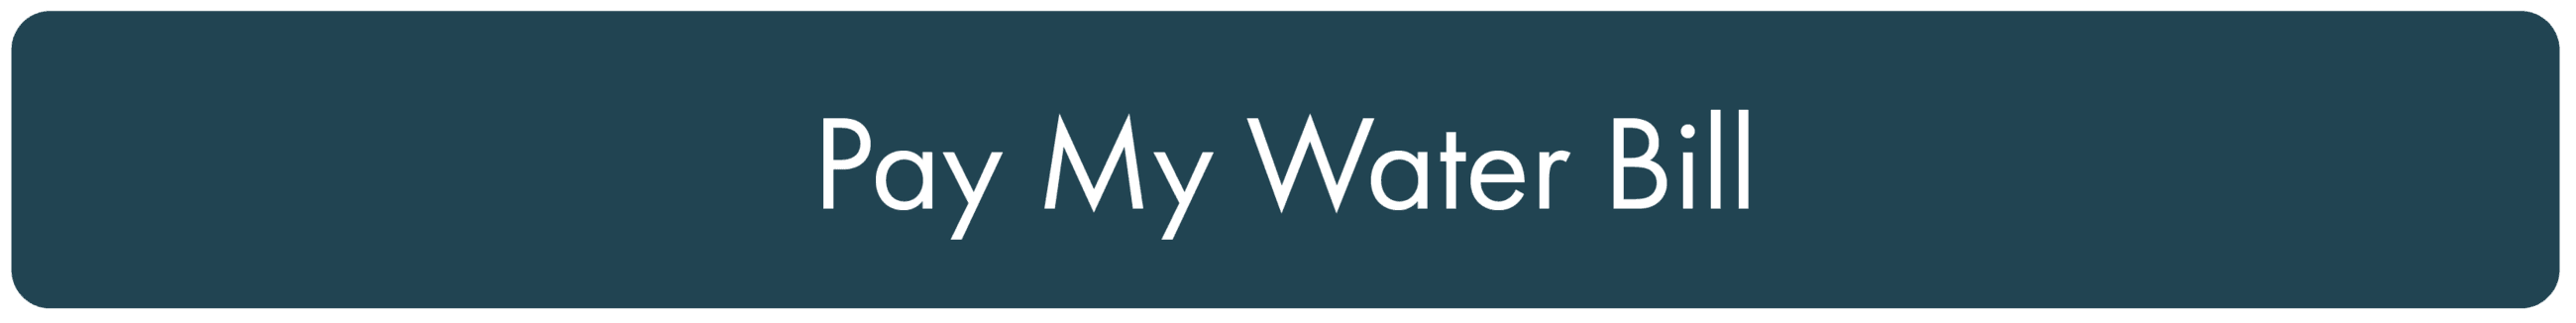 Pay My Water Bill Opens in new window